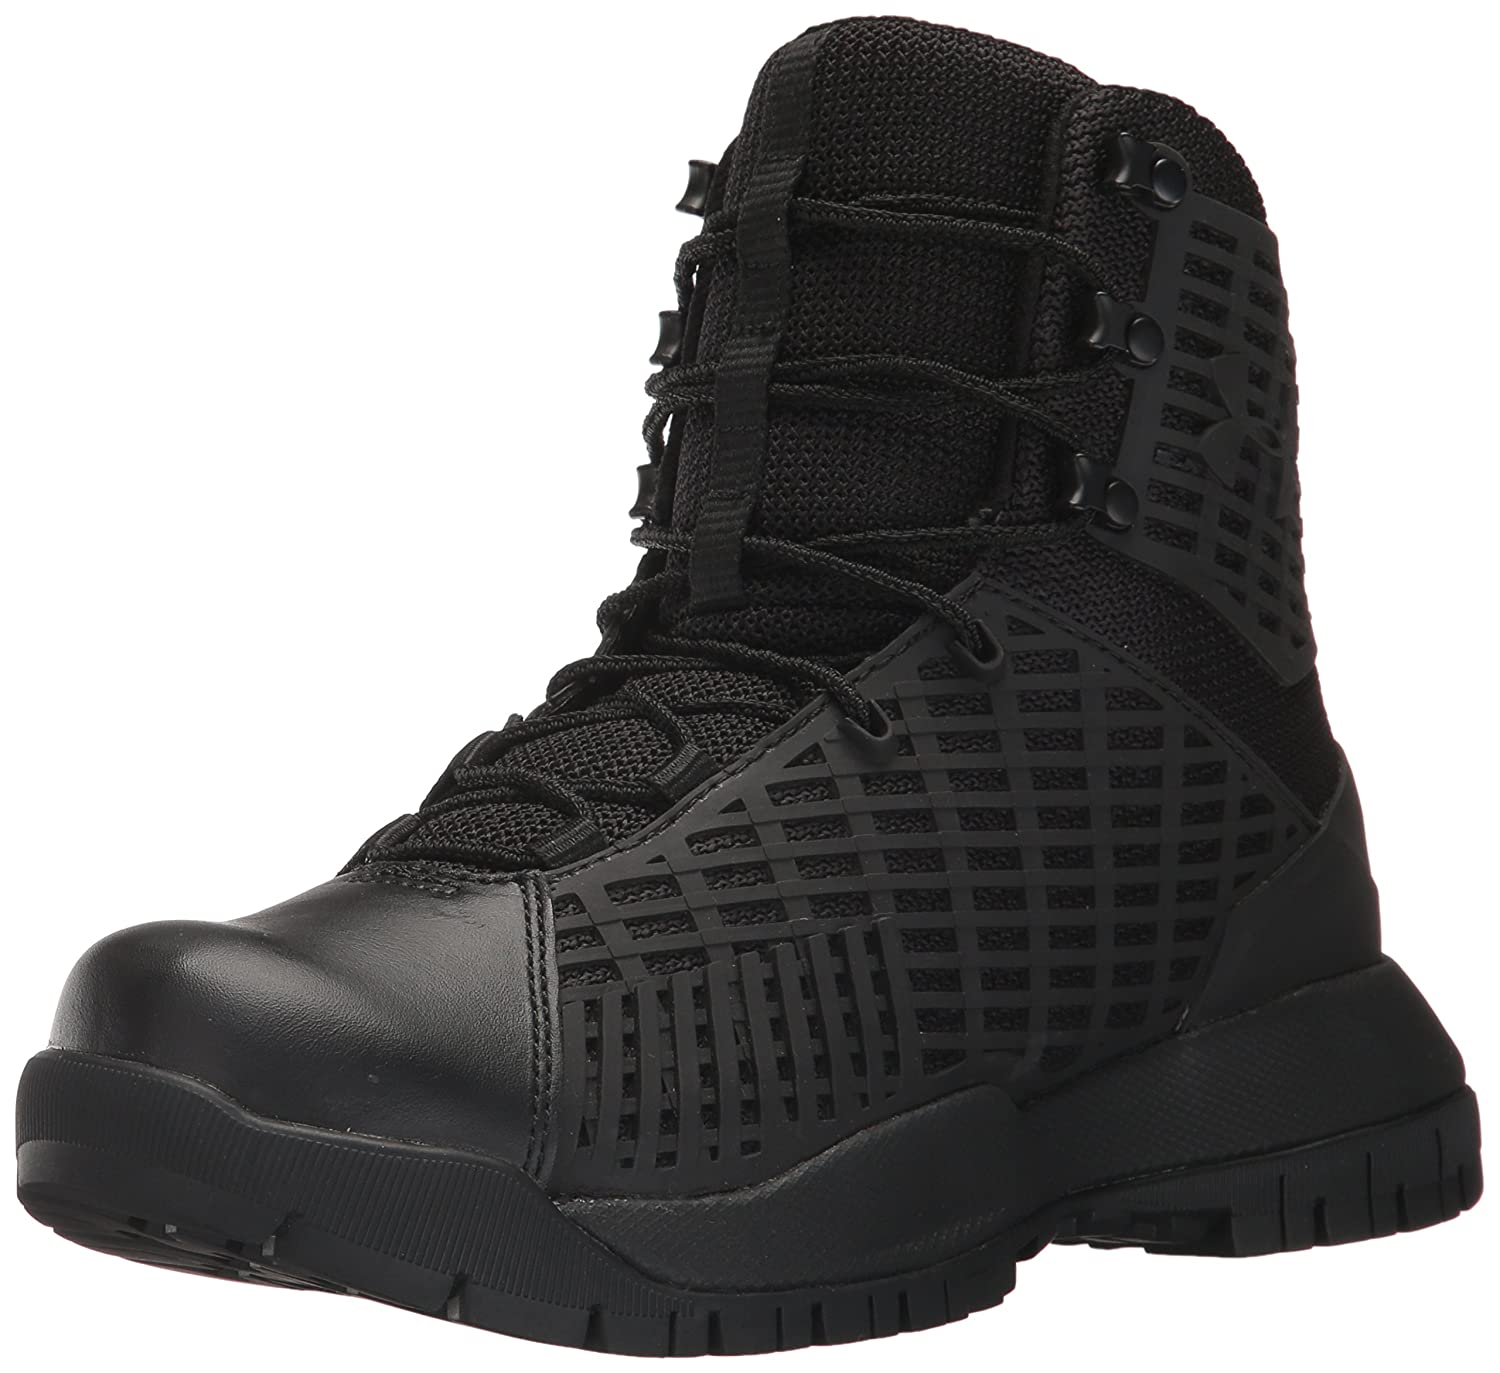 Under Armour Women's Stryker Military and Tactical Boot B01MQKF264 9.5 M US|Black (001)/Black